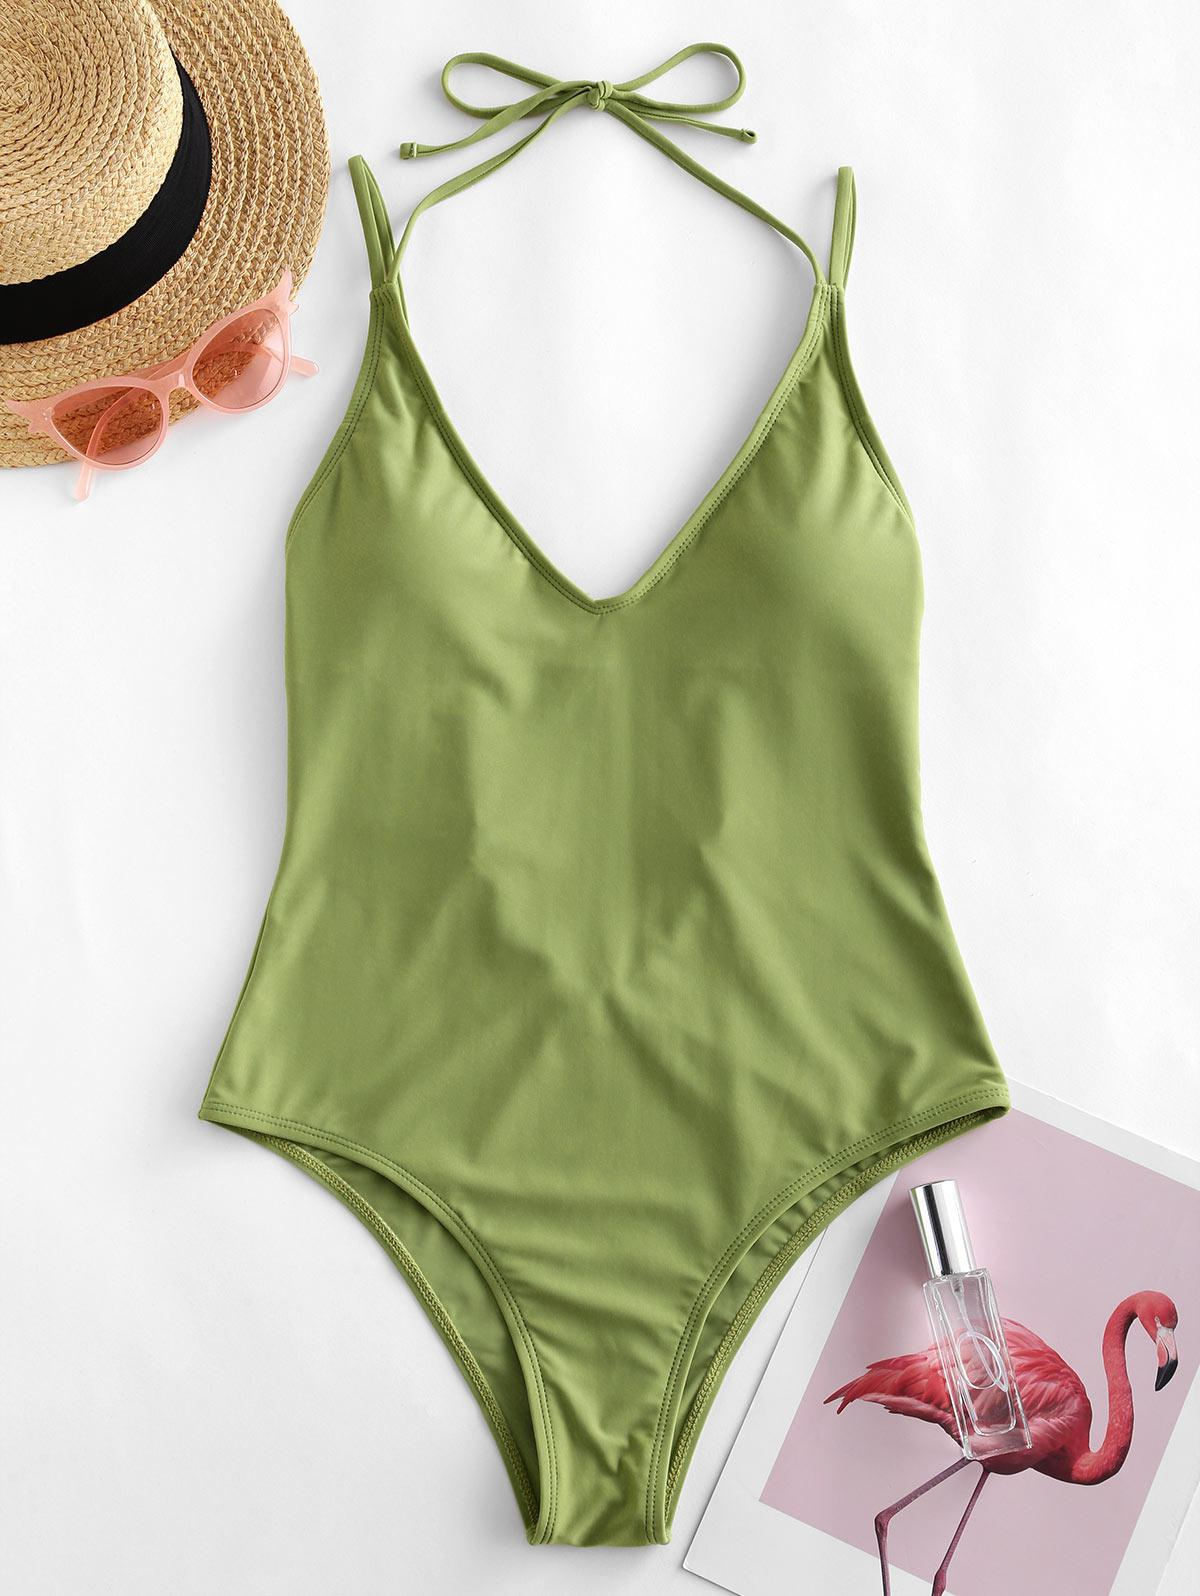 ZAFUL Halter High Cut Open Back One-piece Swimsuit фото